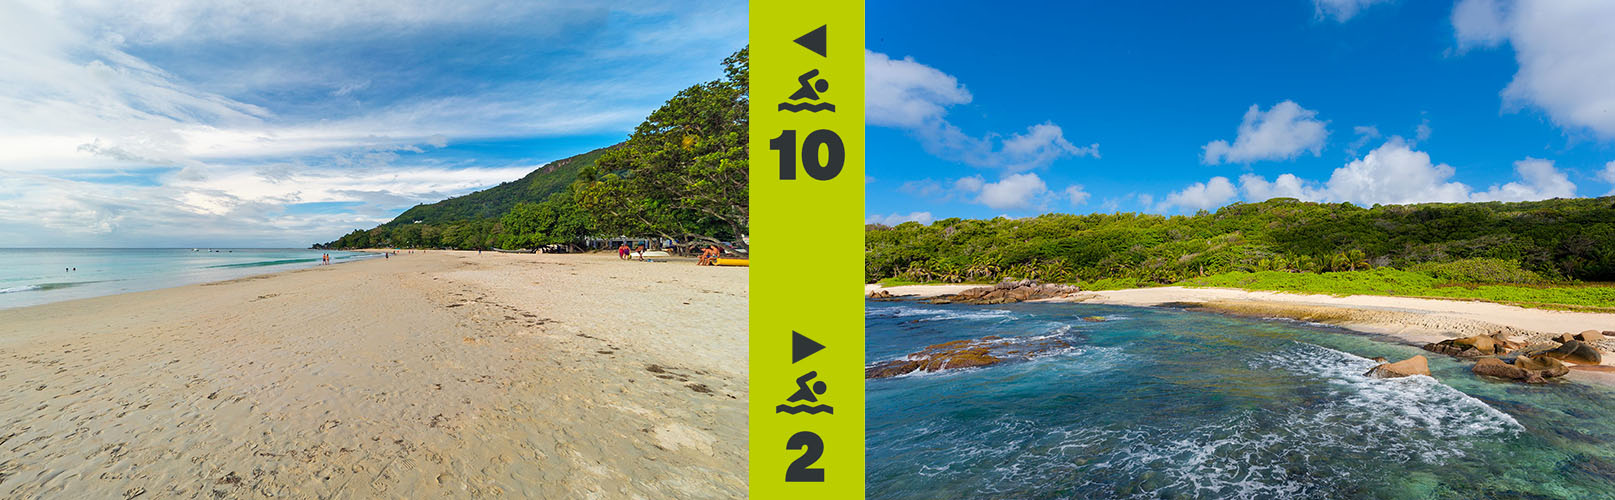 seychelles beach rating - the suitability for bathing and swimming of a beach